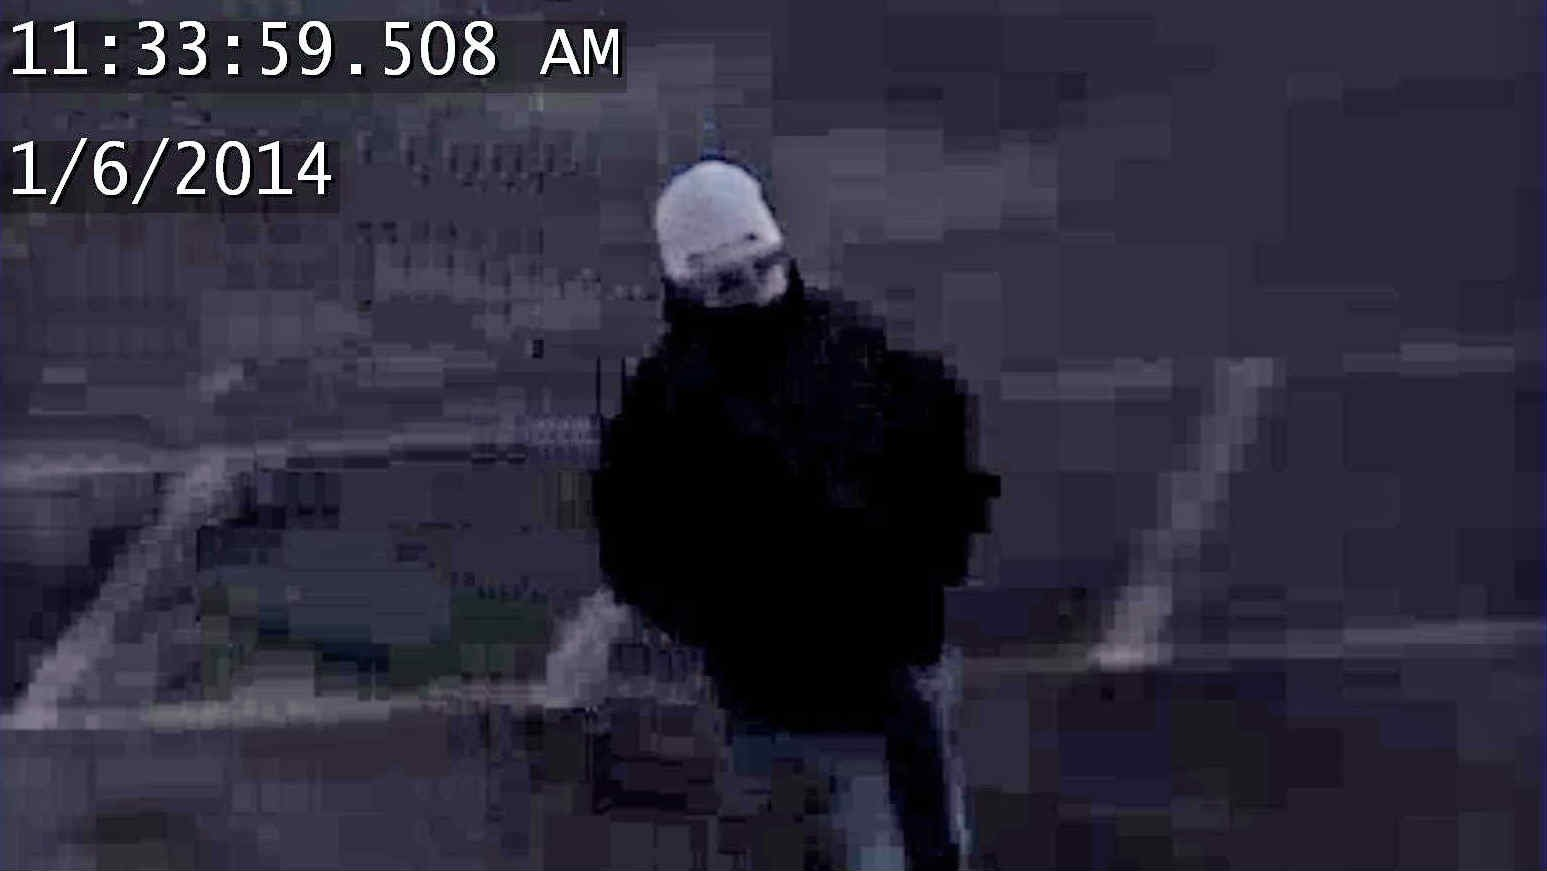 Spokane Police say this man robbed a pharmacy at 5th and Browne in downtown Spokane. Anyone with information please contact Crimestoppers at 1-800-222-TIPS